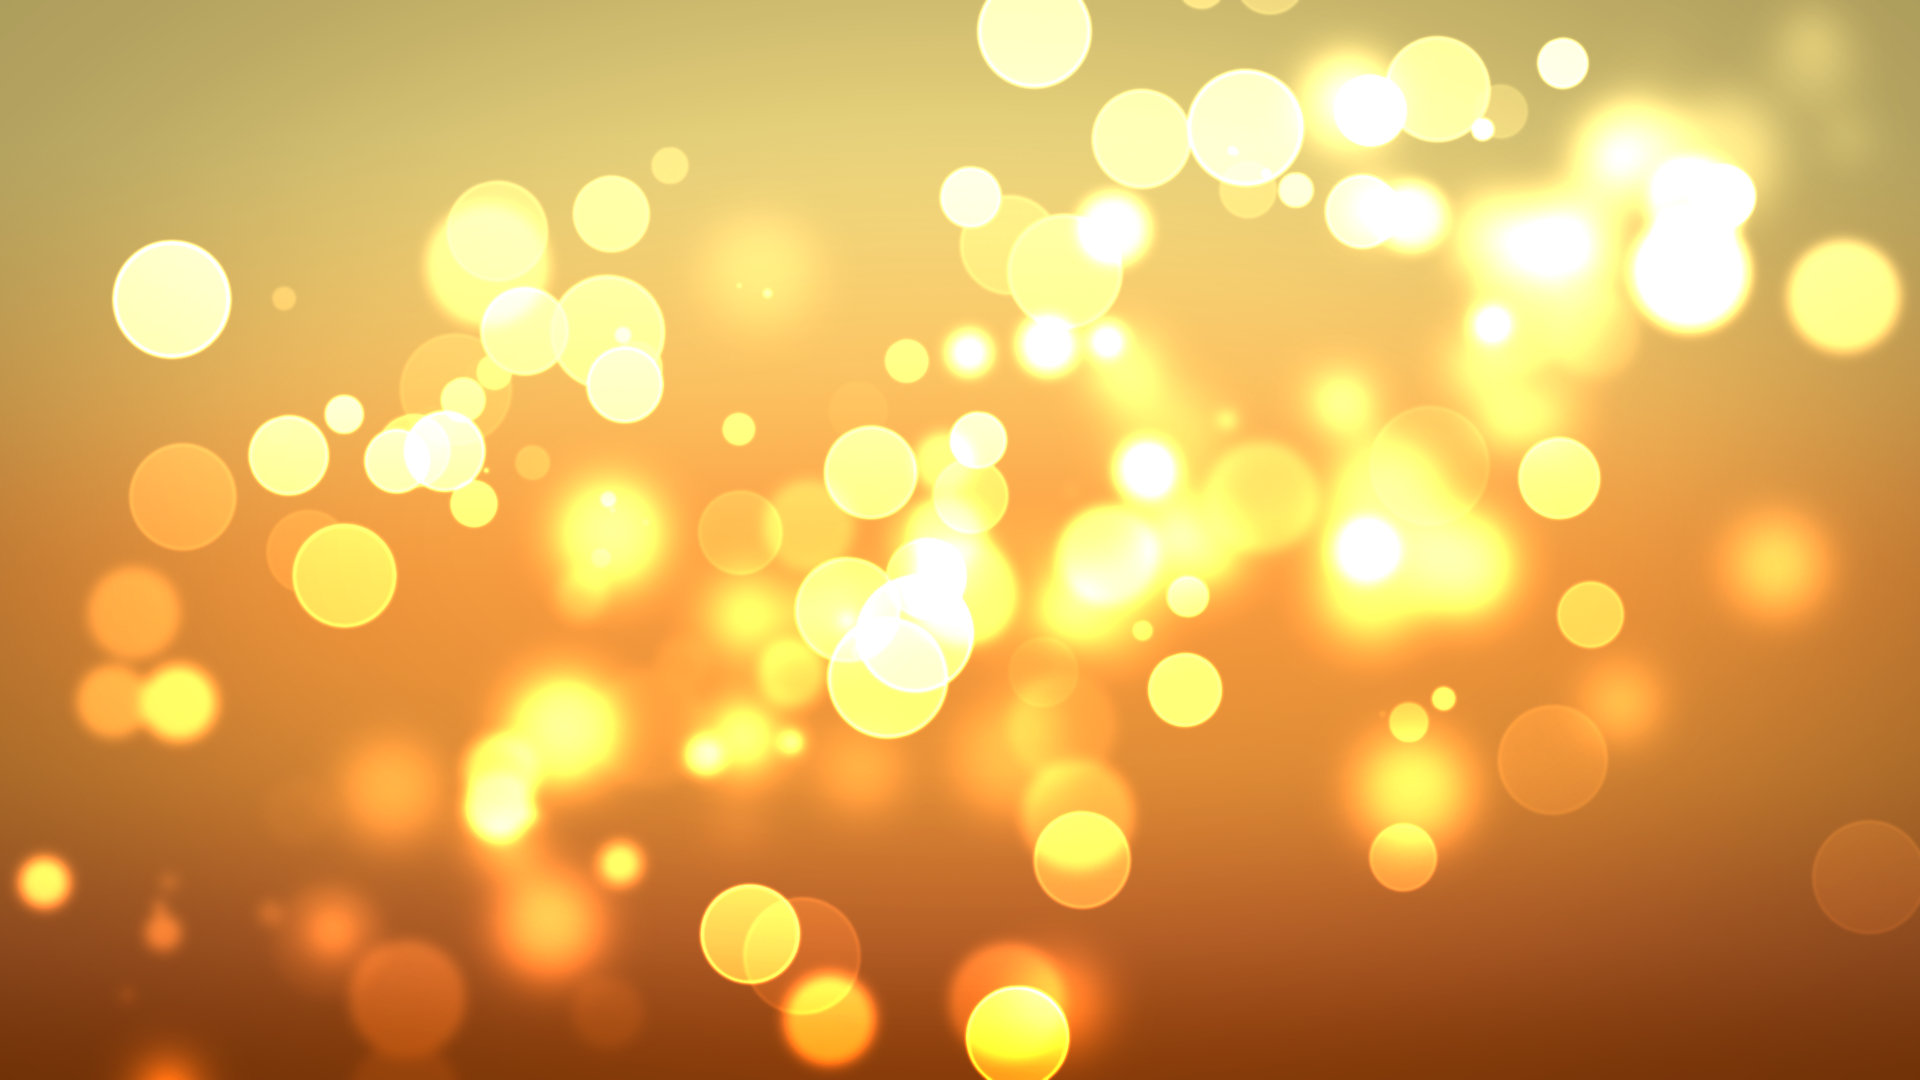 gold light wallpaper 24281